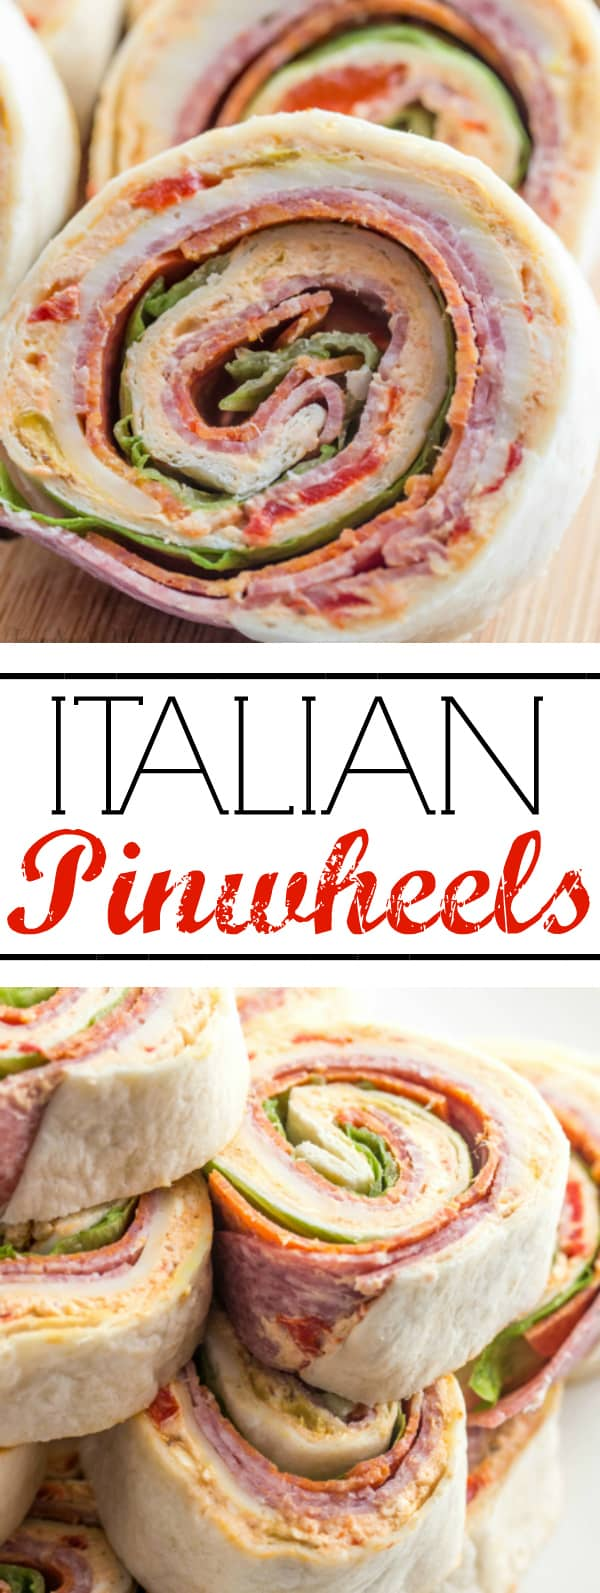 A deliciously fun appetizer for your game day, holiday or party needs, these Italian Pinwheels are tasty, fast and a fun addition to your meal! #pinwheels #appetizer #pepperoni #partyfood #fingerfood #salami